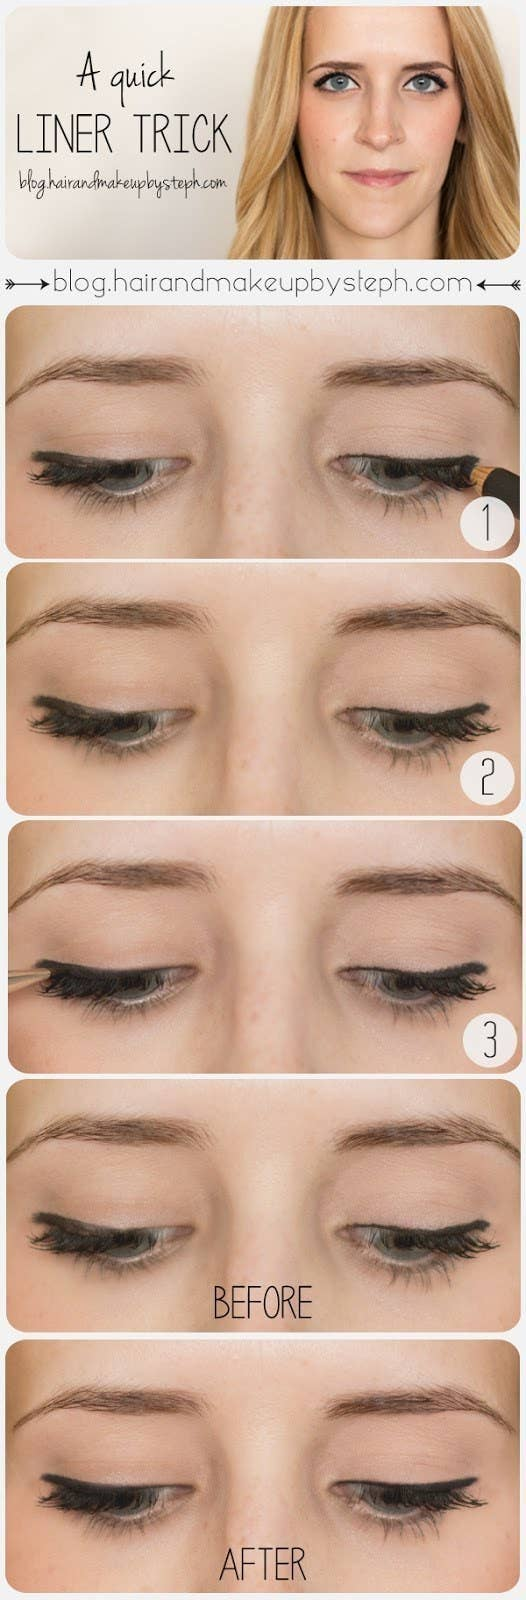 9 Useful Tips For People Who Suck At Eyeliner